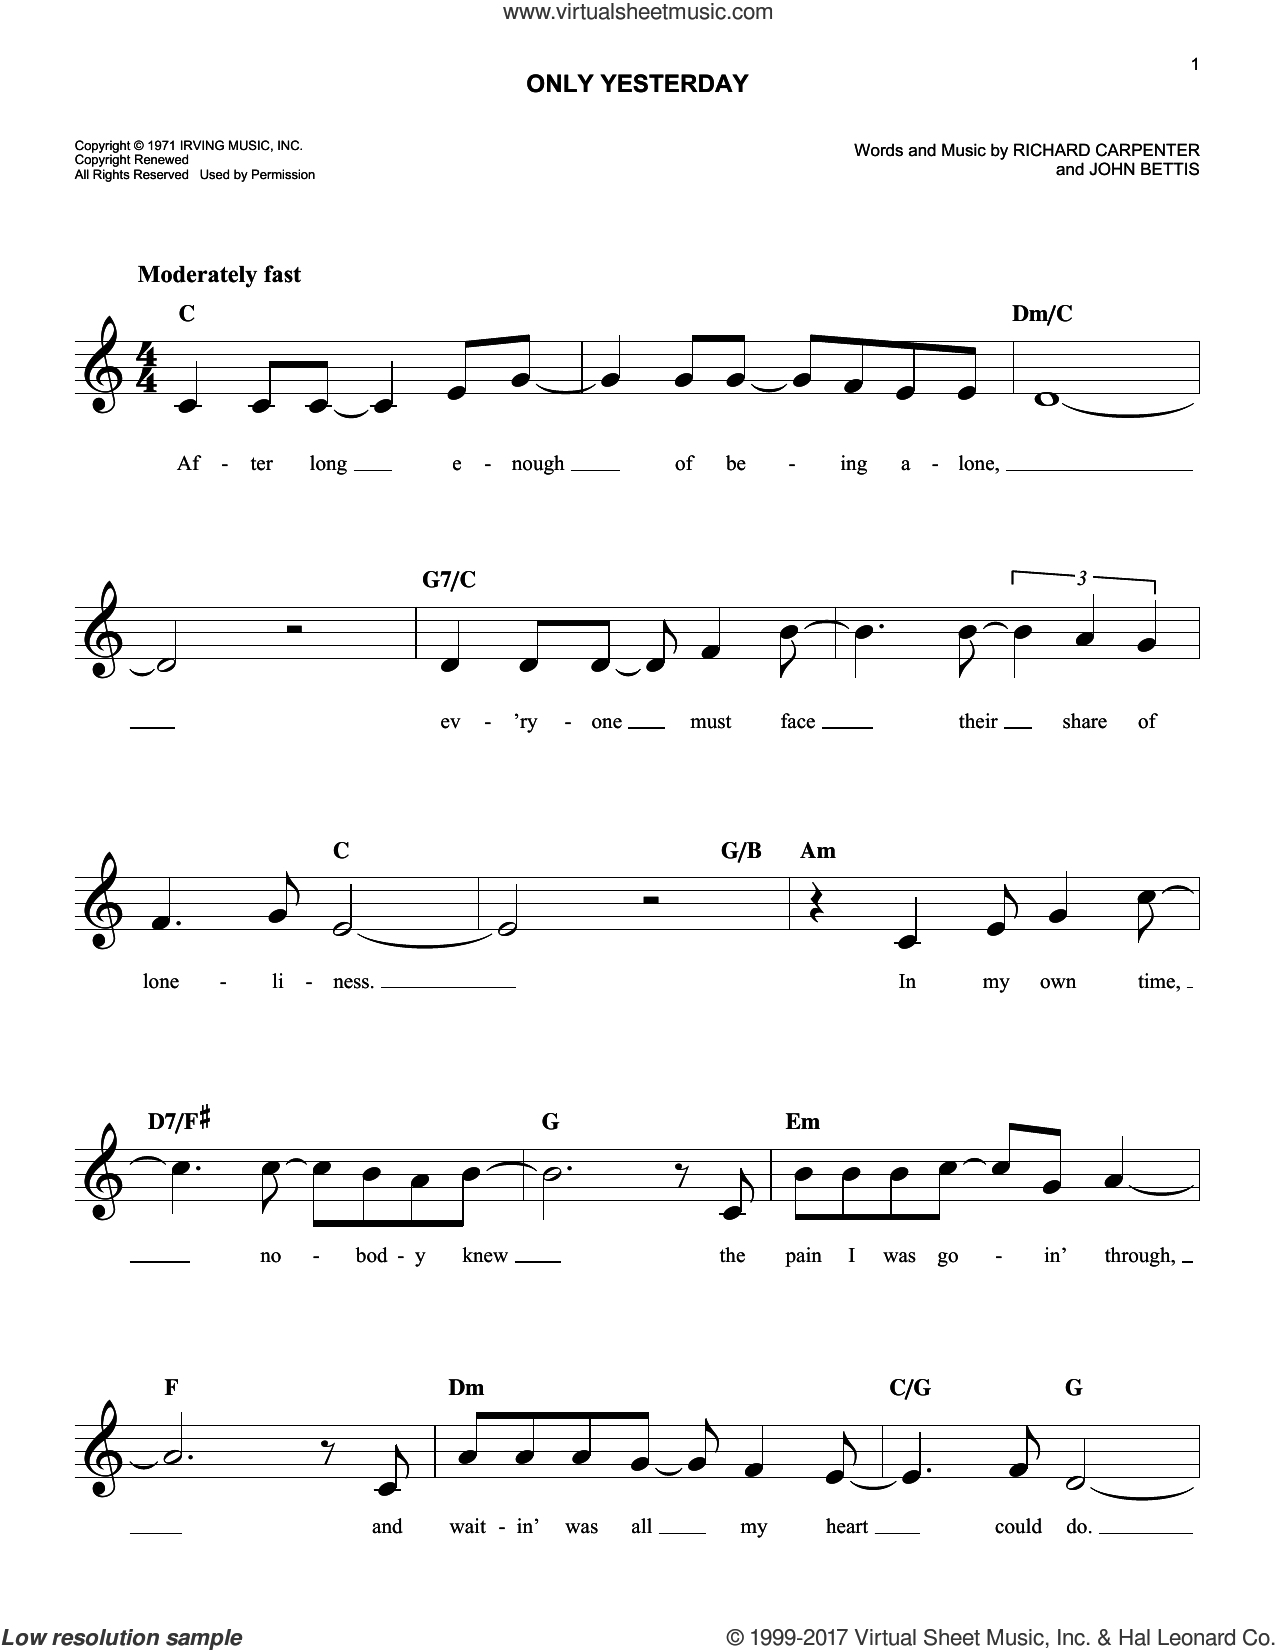 Only Yesterday sheet music for voice and other instruments (fake book) by Richard Carpenter, Carpenters and John Bettis, intermediate skill level